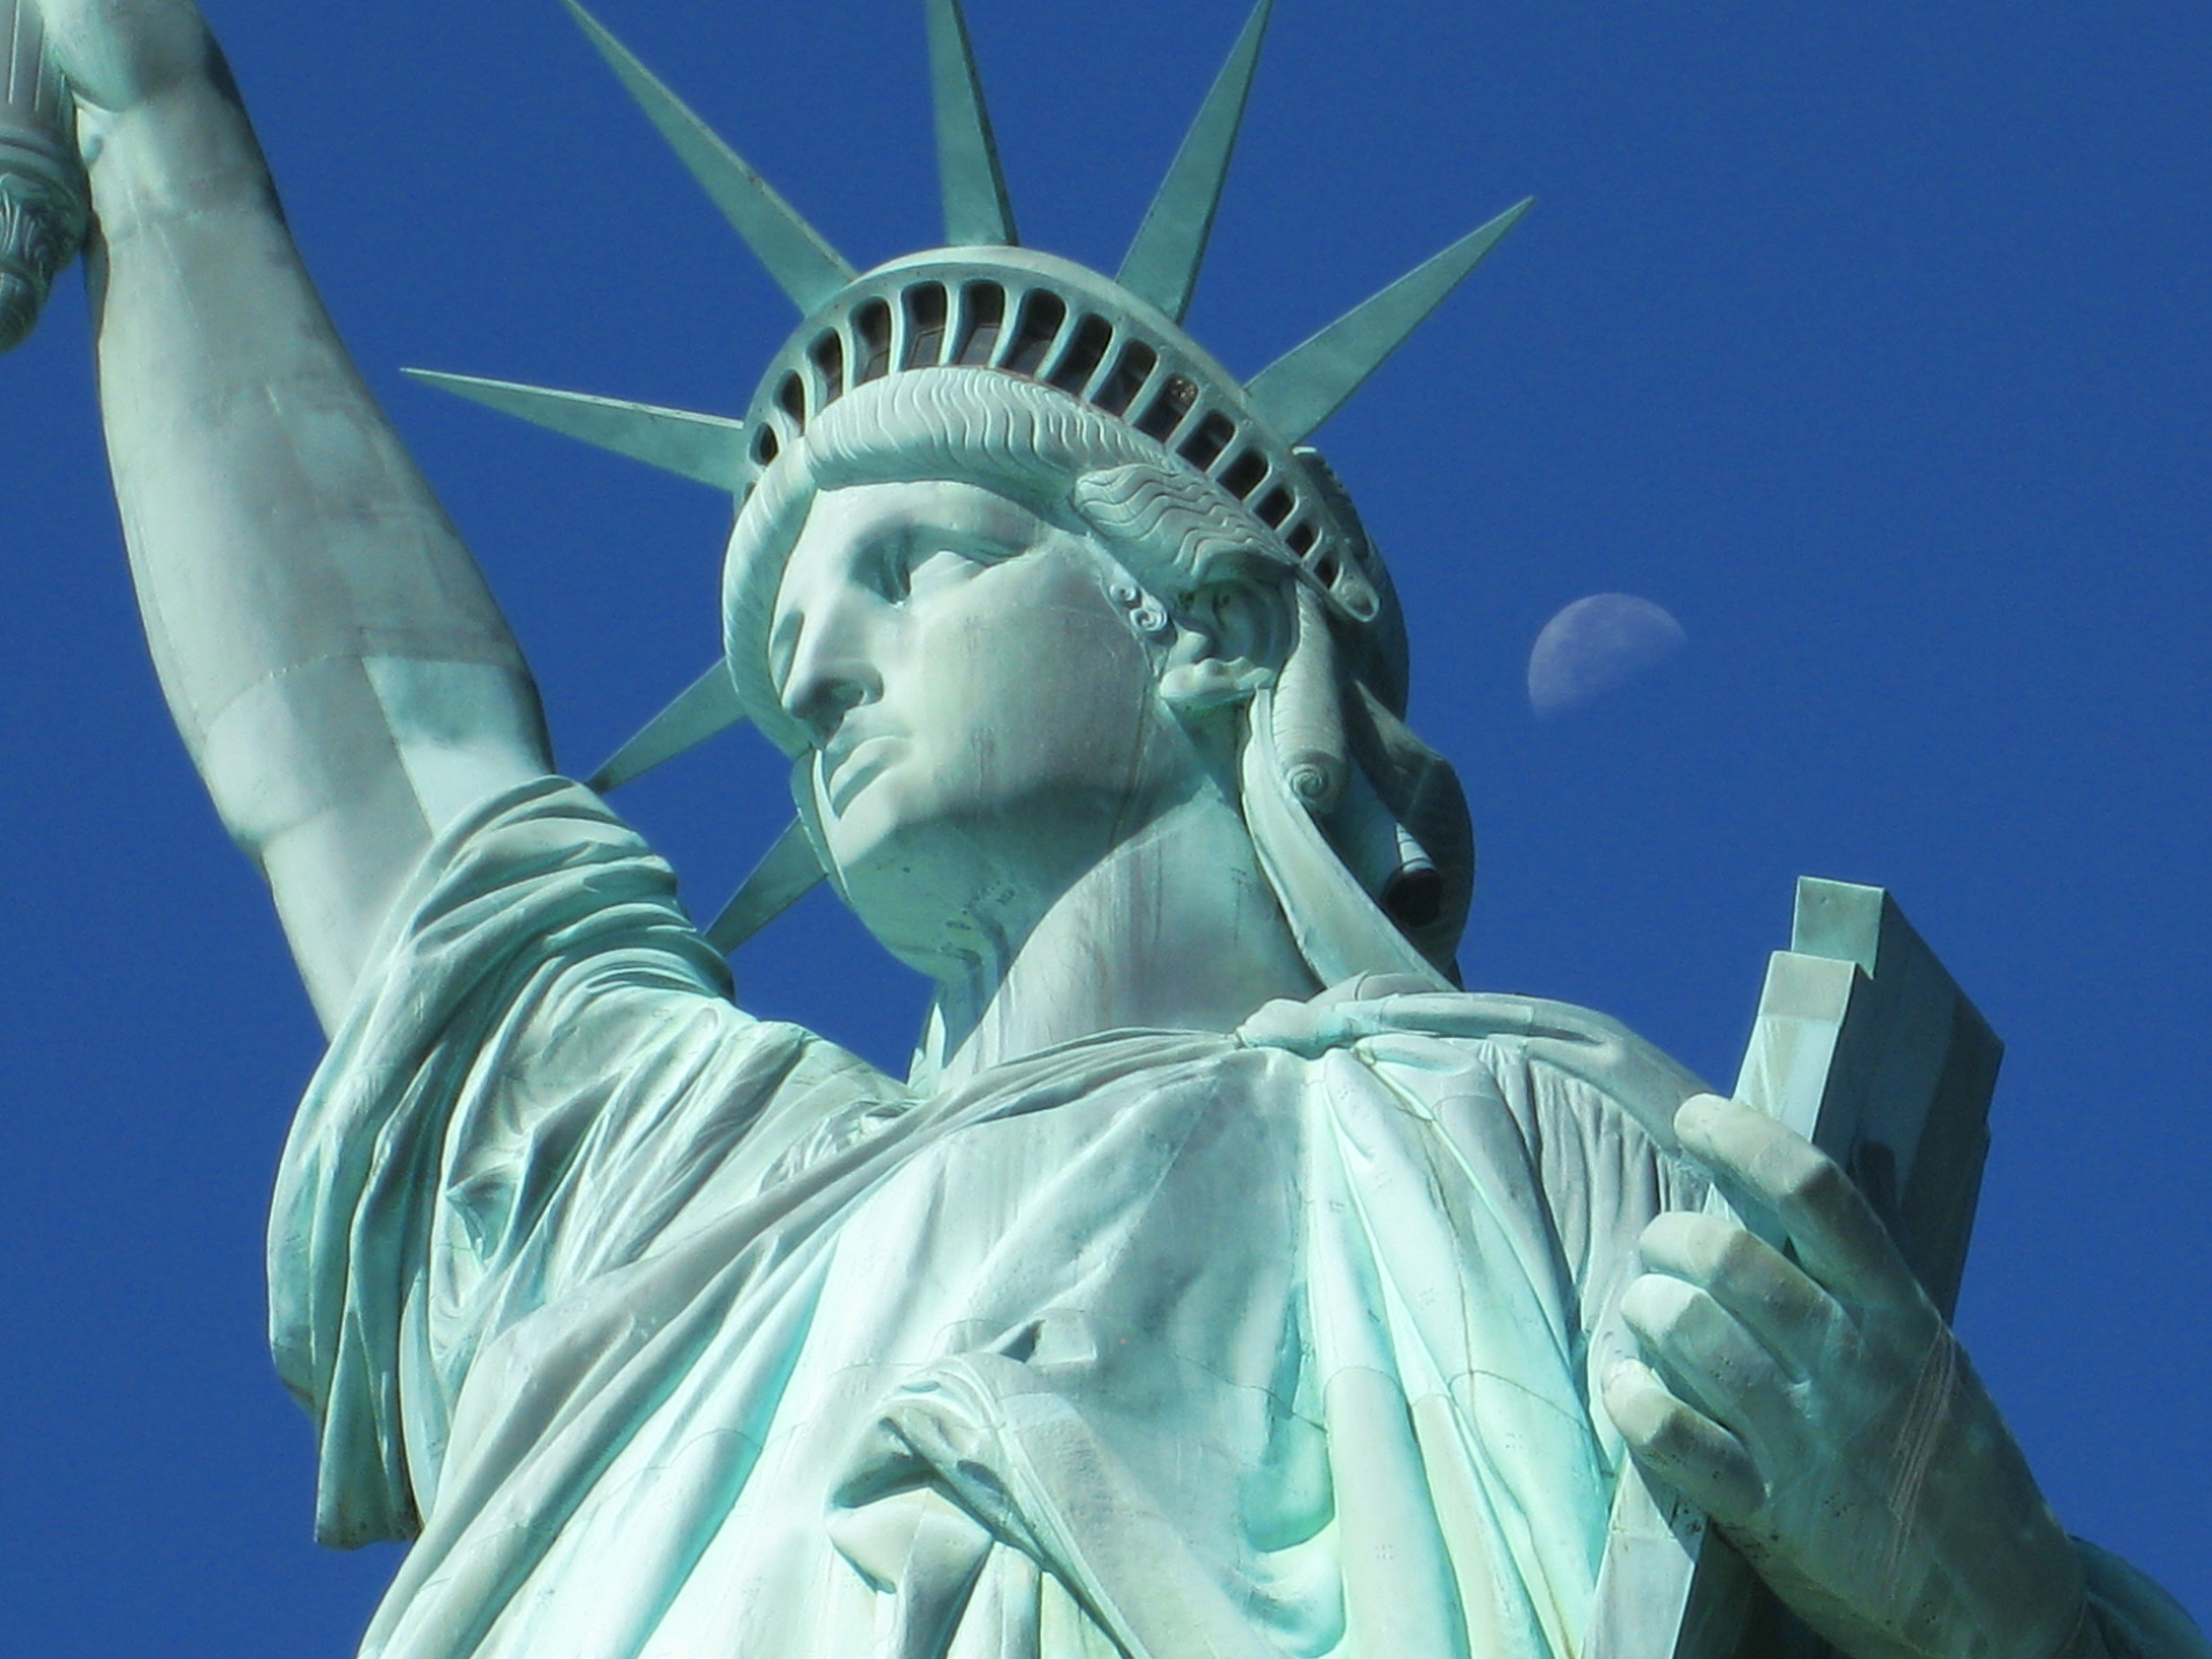 The Statue of Liberty represents the Spirit of Freedom.